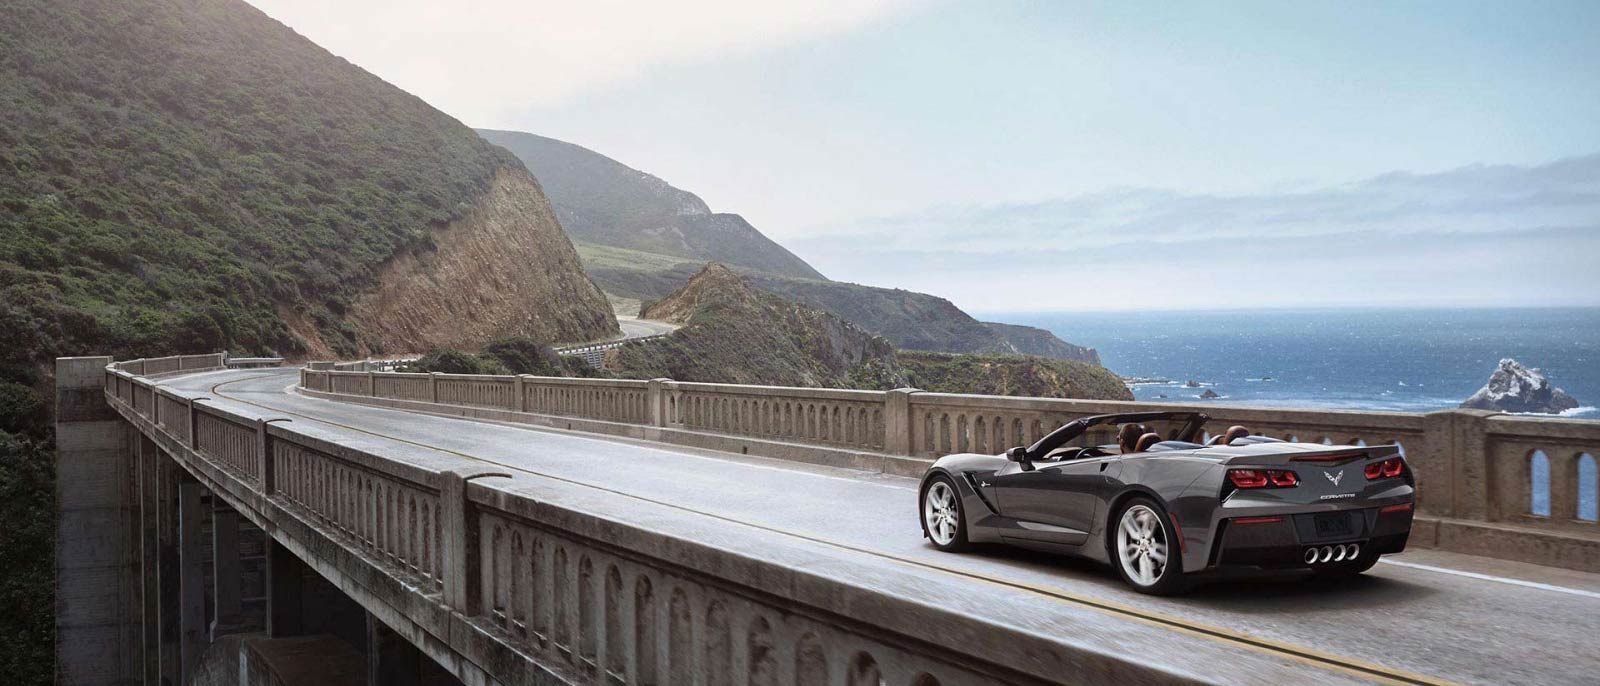 2016 Chevrolet Corvette Stingray On Bridge